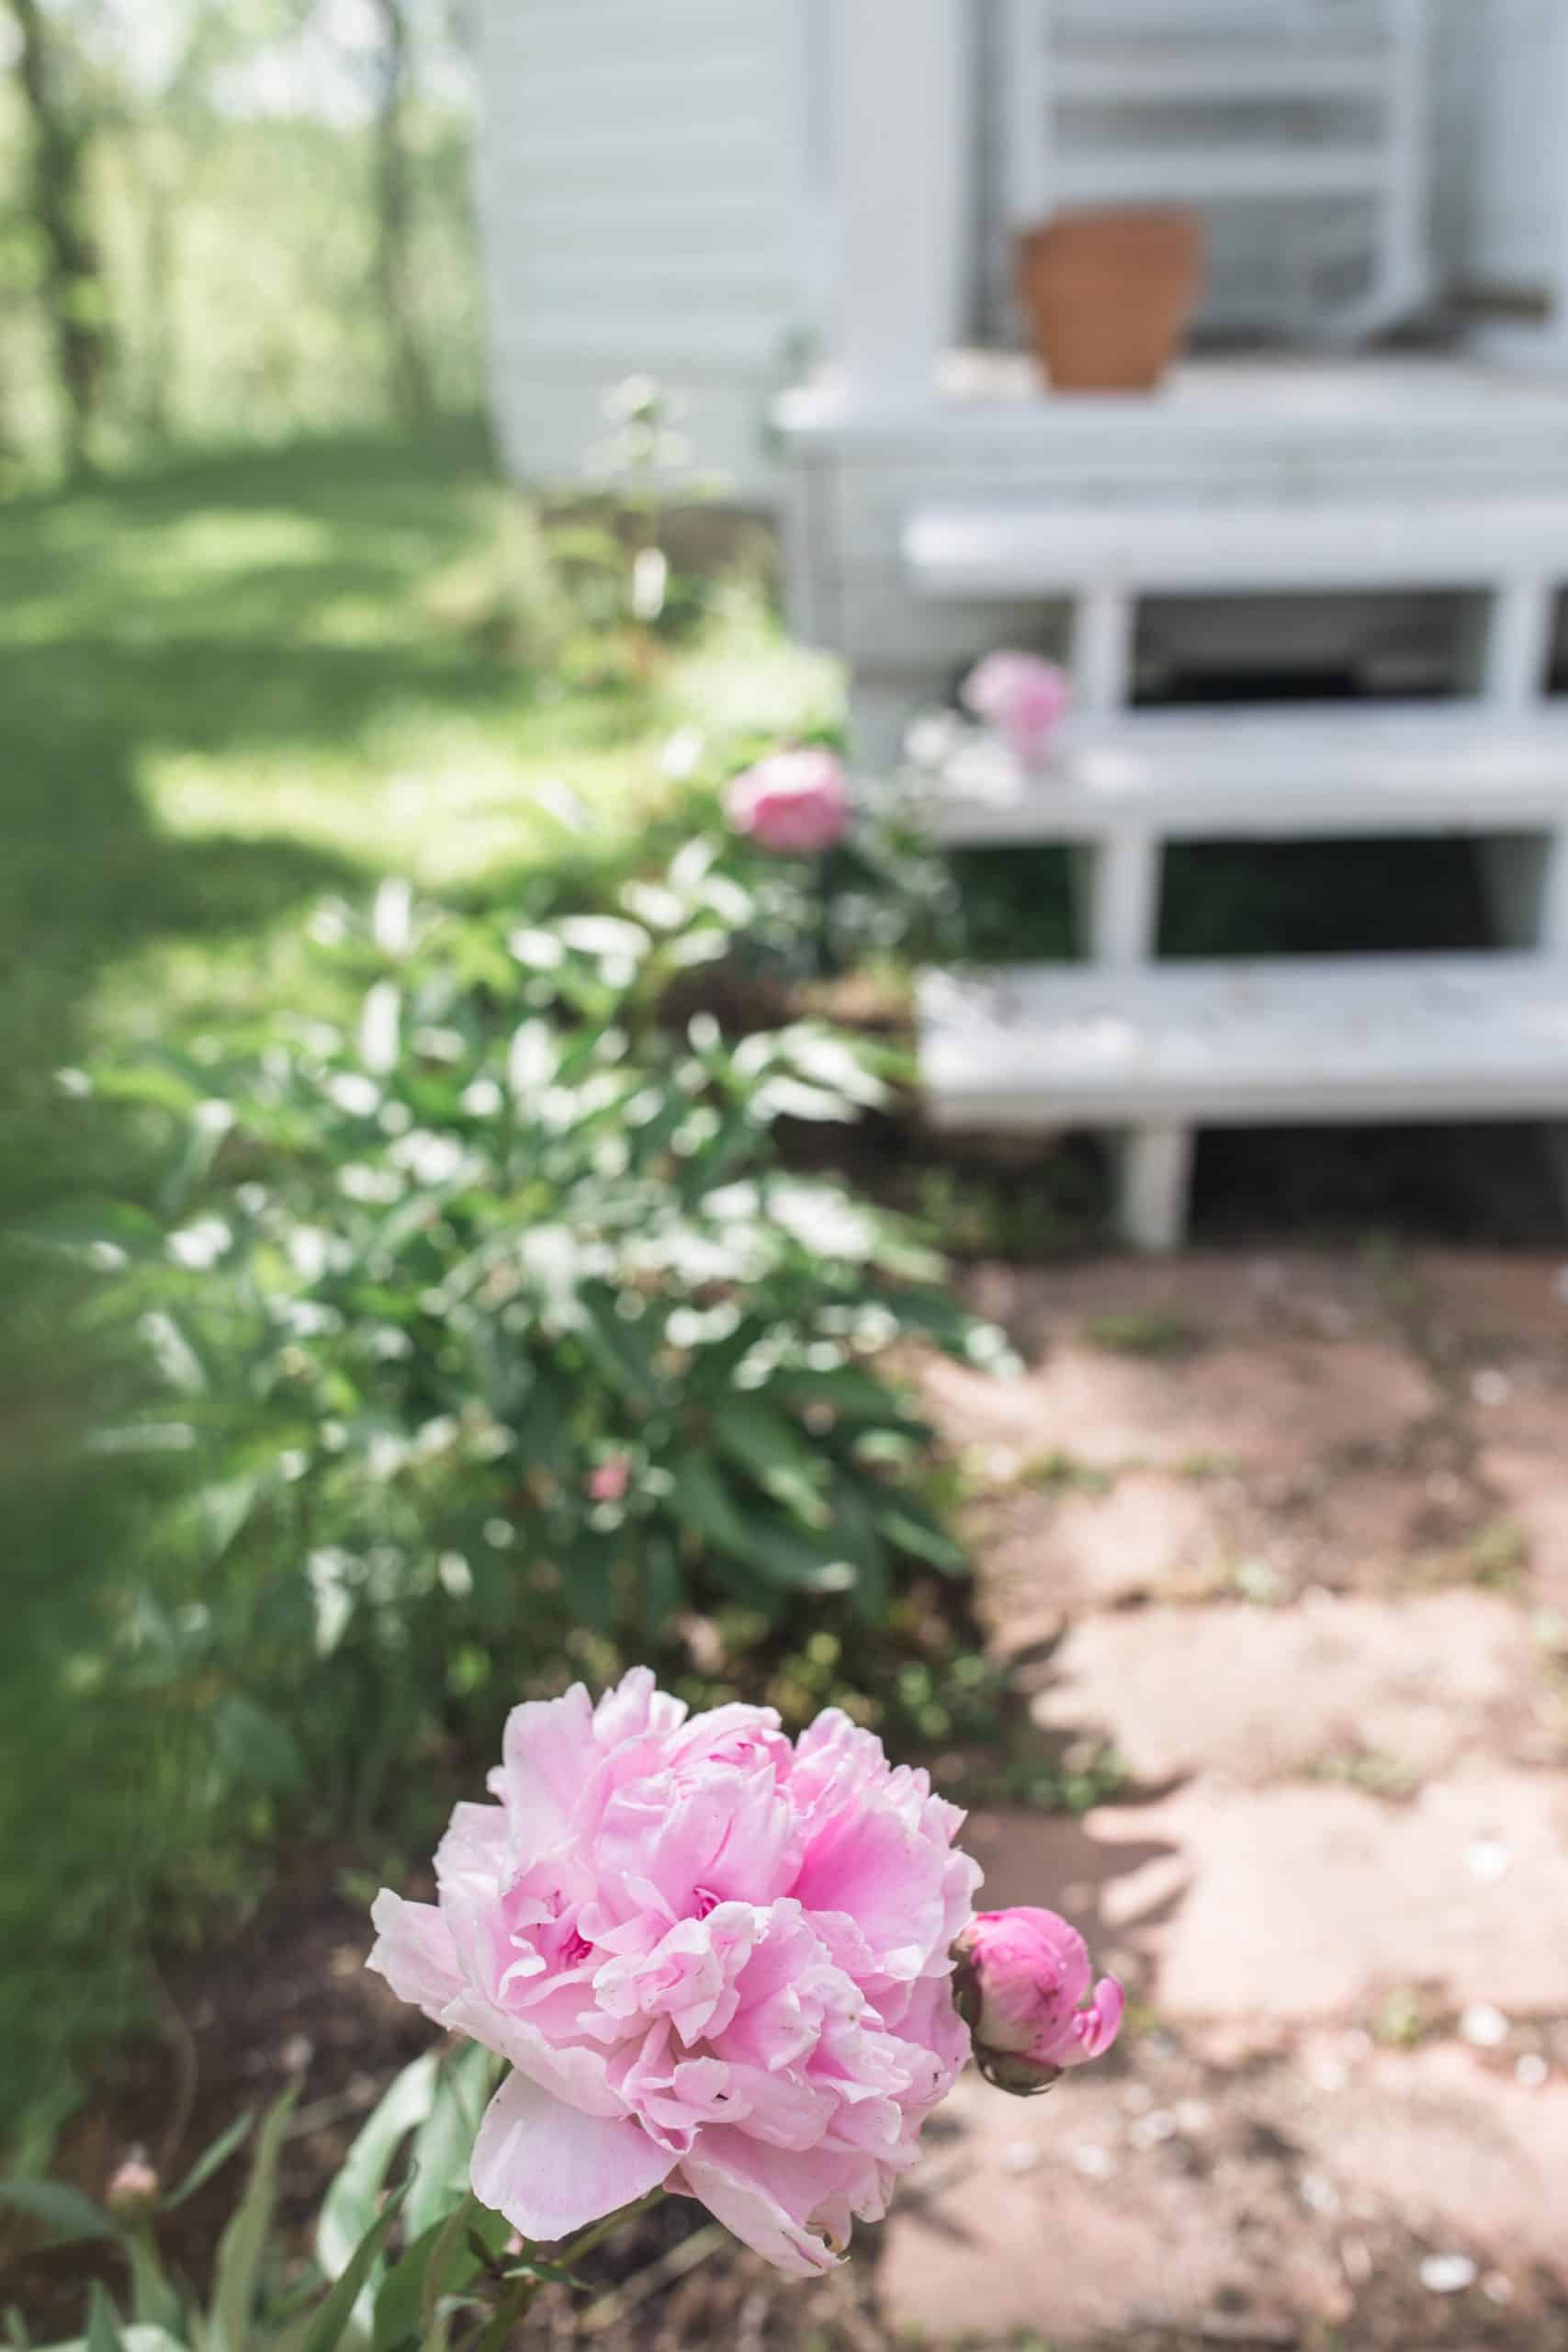 7 Tips For Growing A Cut Flower Garden And How To Make Beautiful Arrangements Farmhouse On Boone